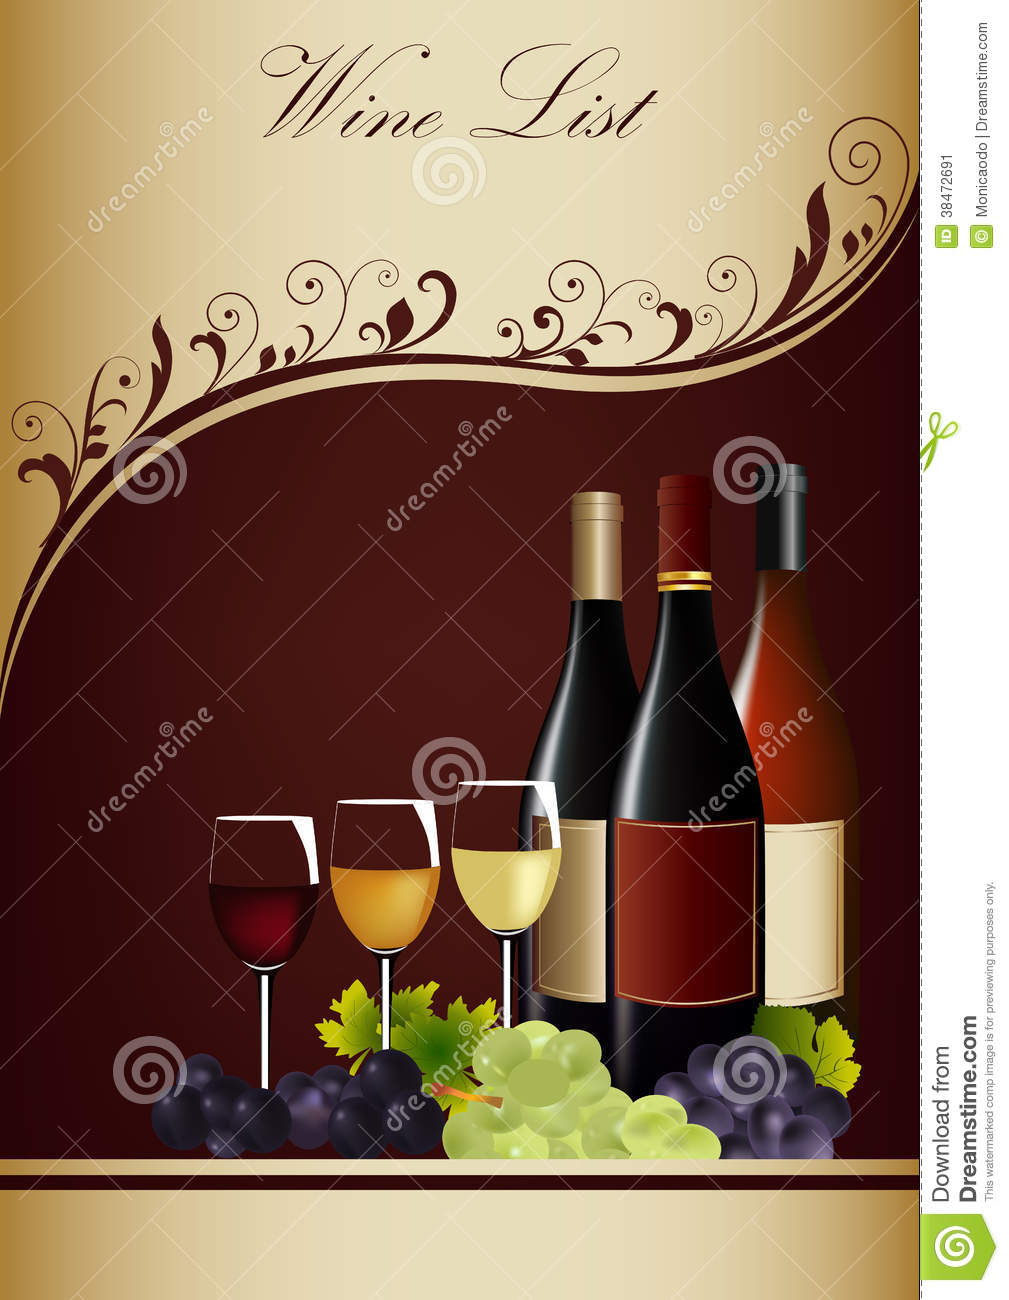 Wine List Menu Stock Image Image 38472691